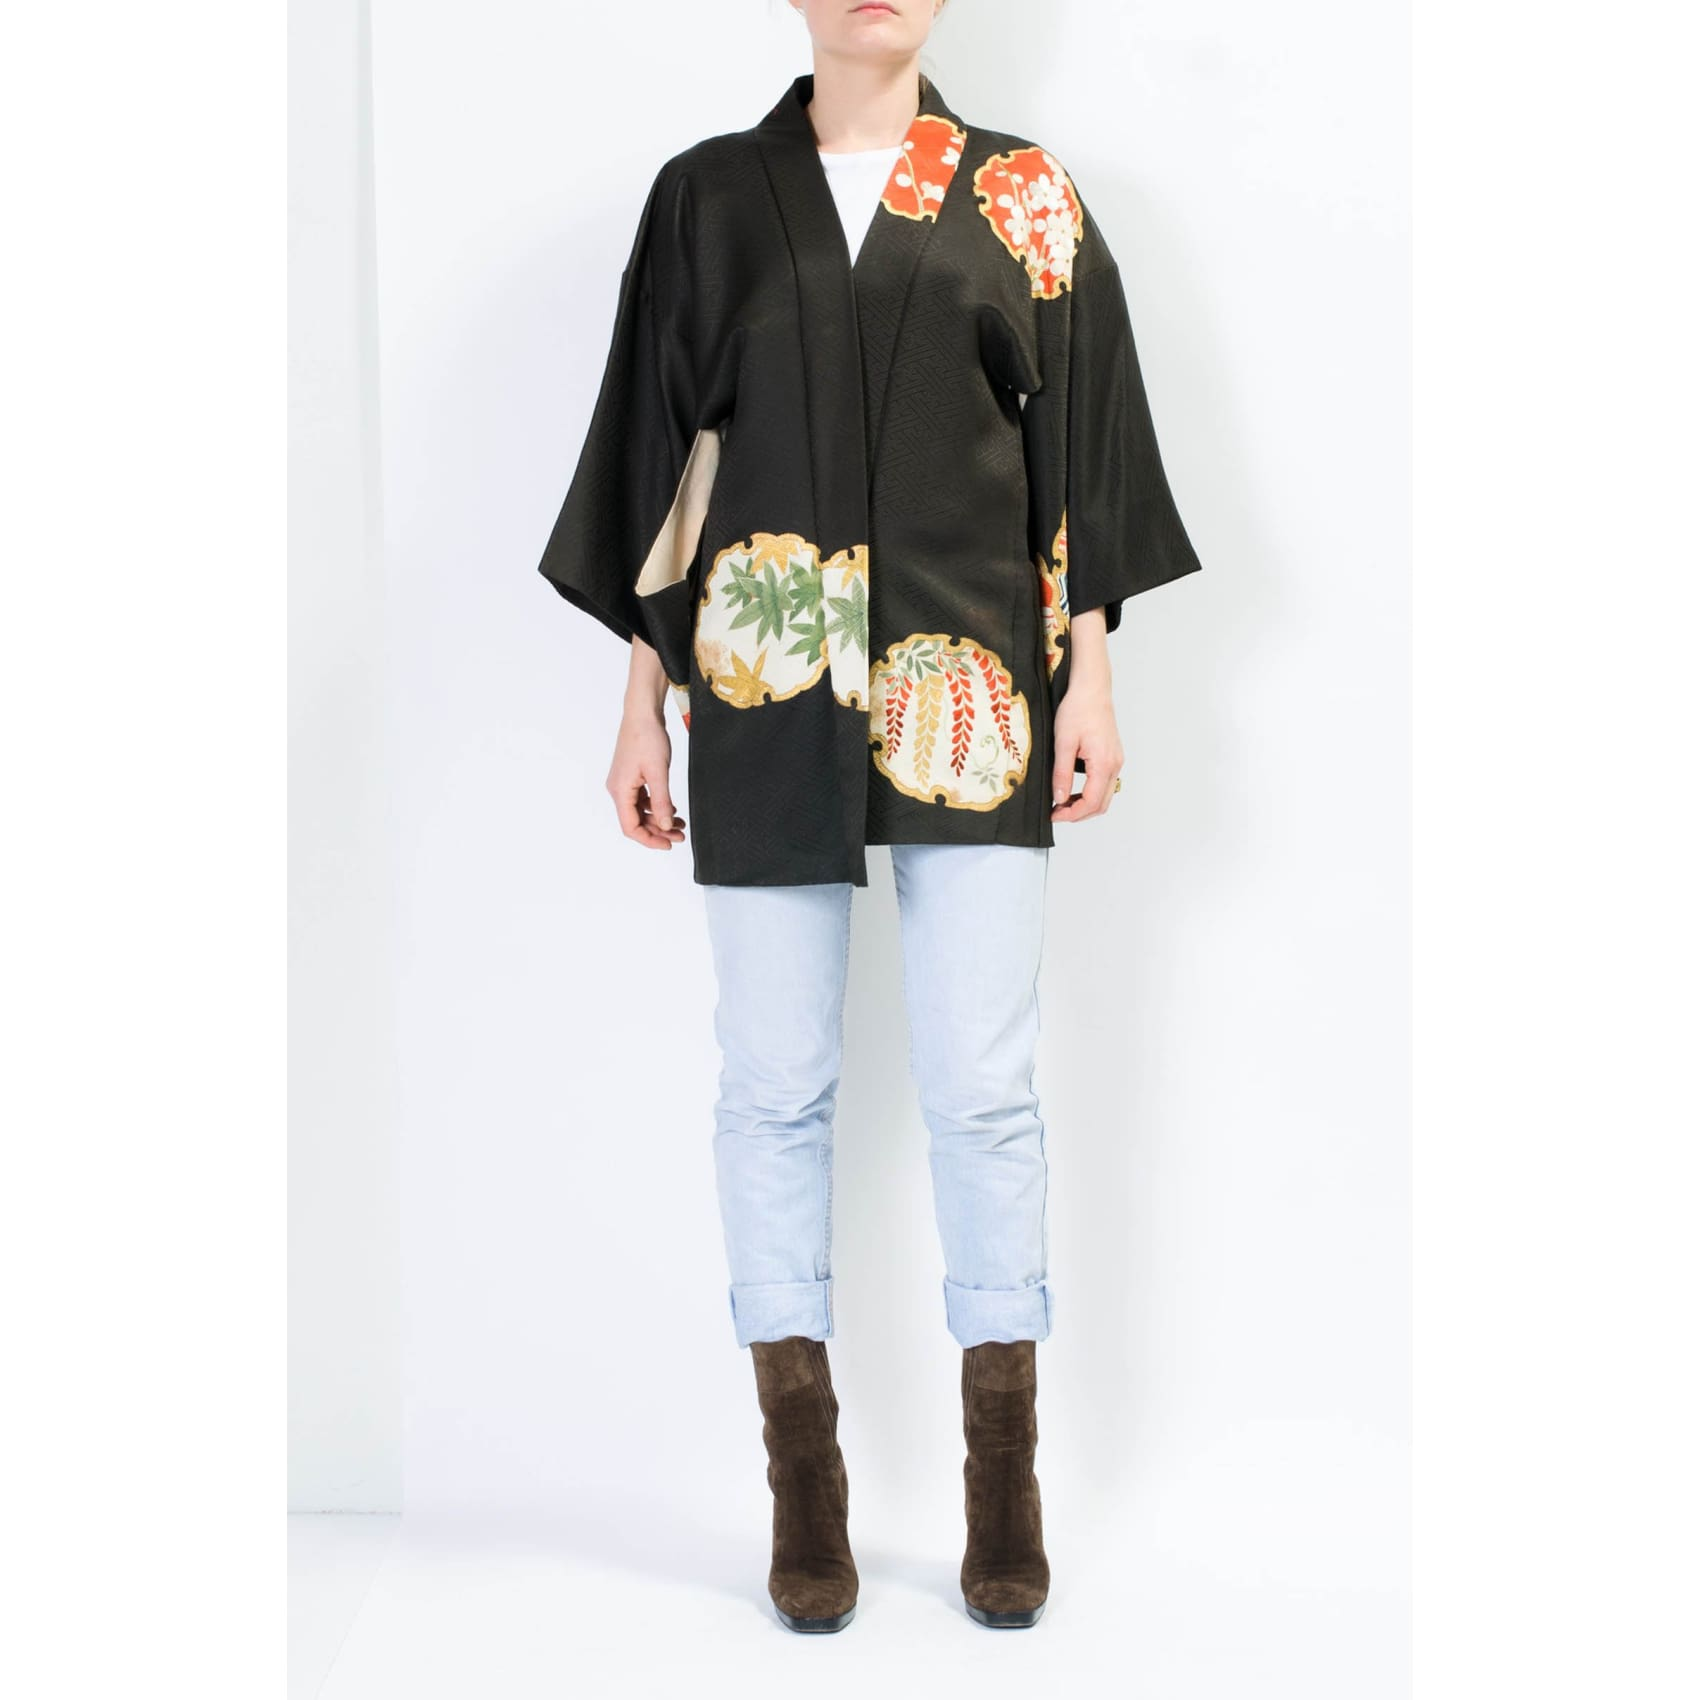 Jasper Hand Embroidered Antique Kimono Jacket